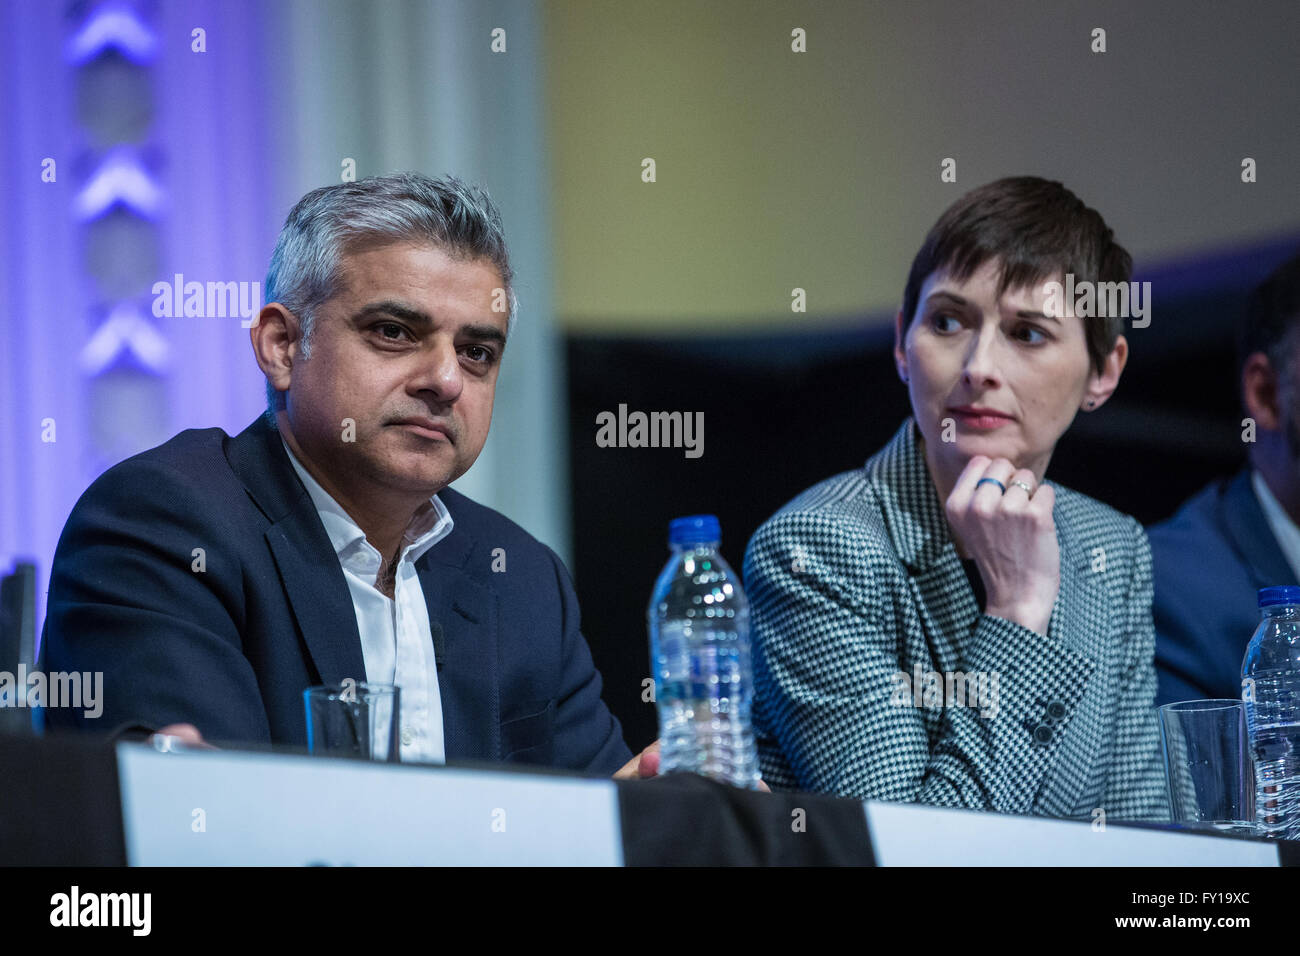 London, UK. 19th April, 2016. Sadiq Khan, Labour candidate, and Caroline Pidgeon, Liberal Democrat candidate, at - Stock Image